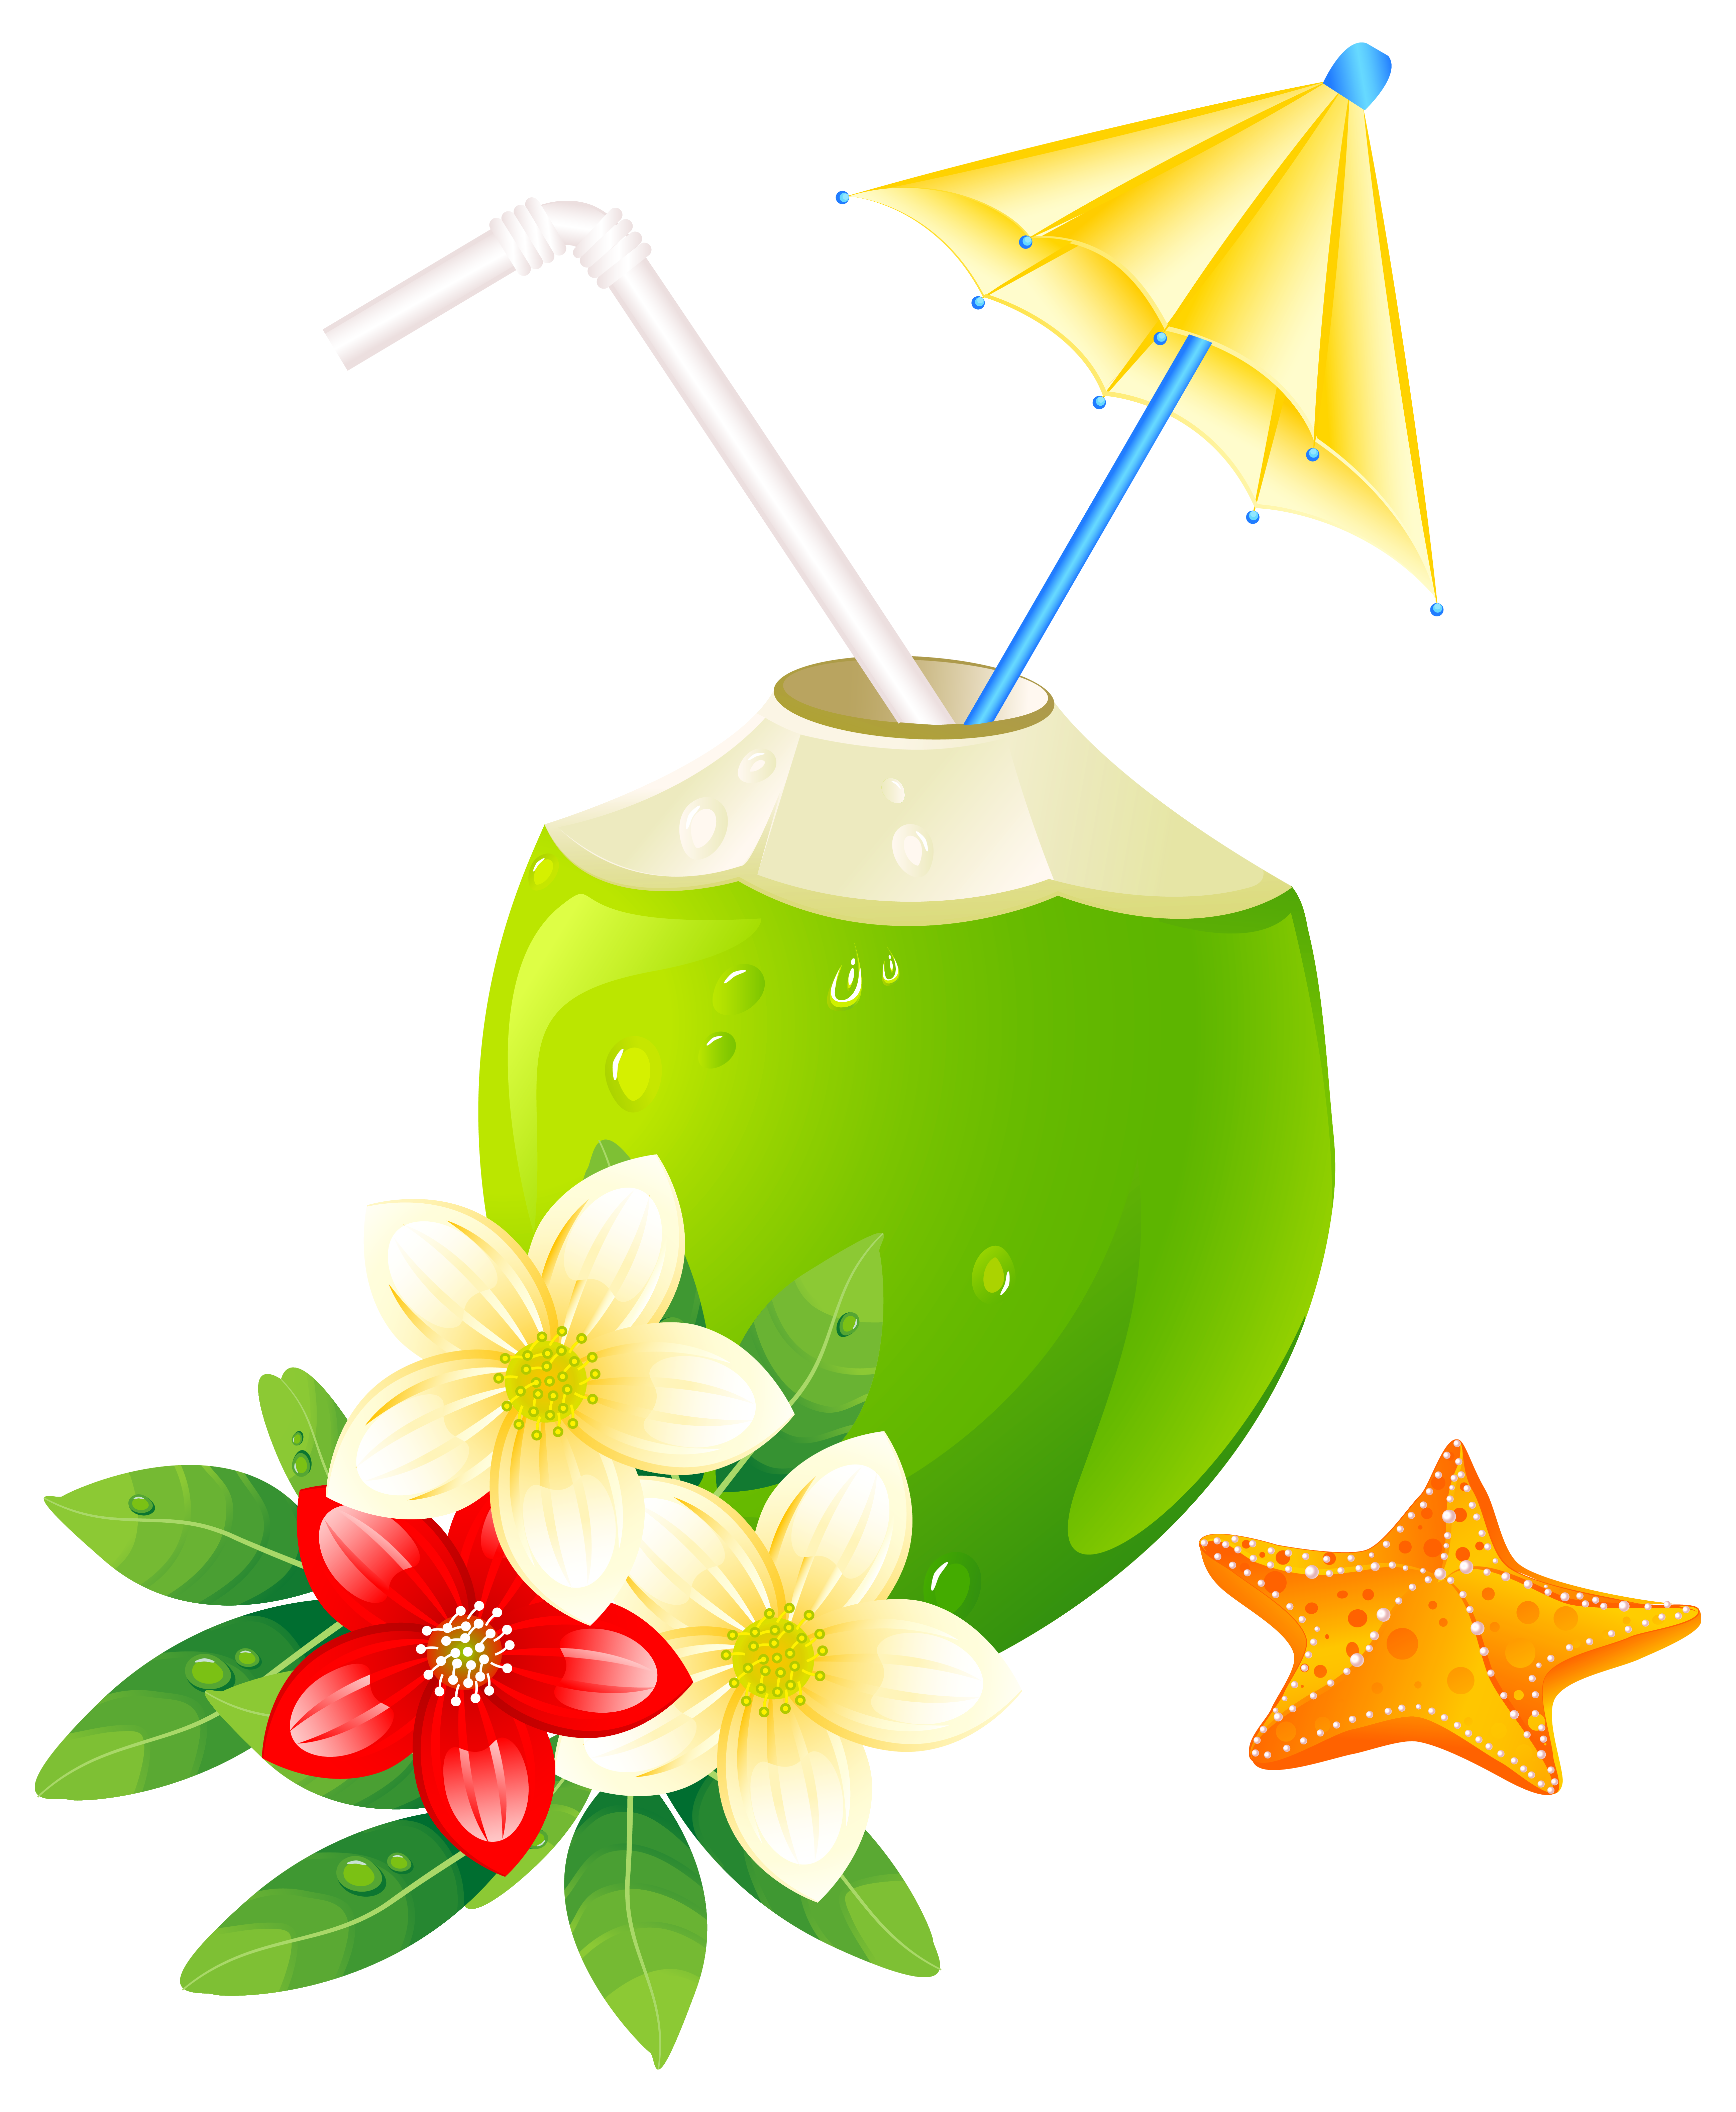 Juice clipart summer. Exotic coctail png image